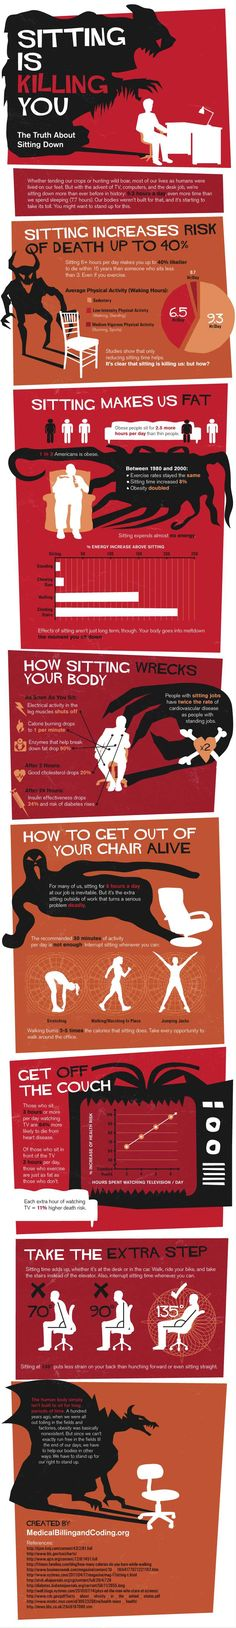 Sitting Is Killing You - #Infographic - Ways to stay #healthy in a sedentary society - over 6 hours per day of sitting is not healthy